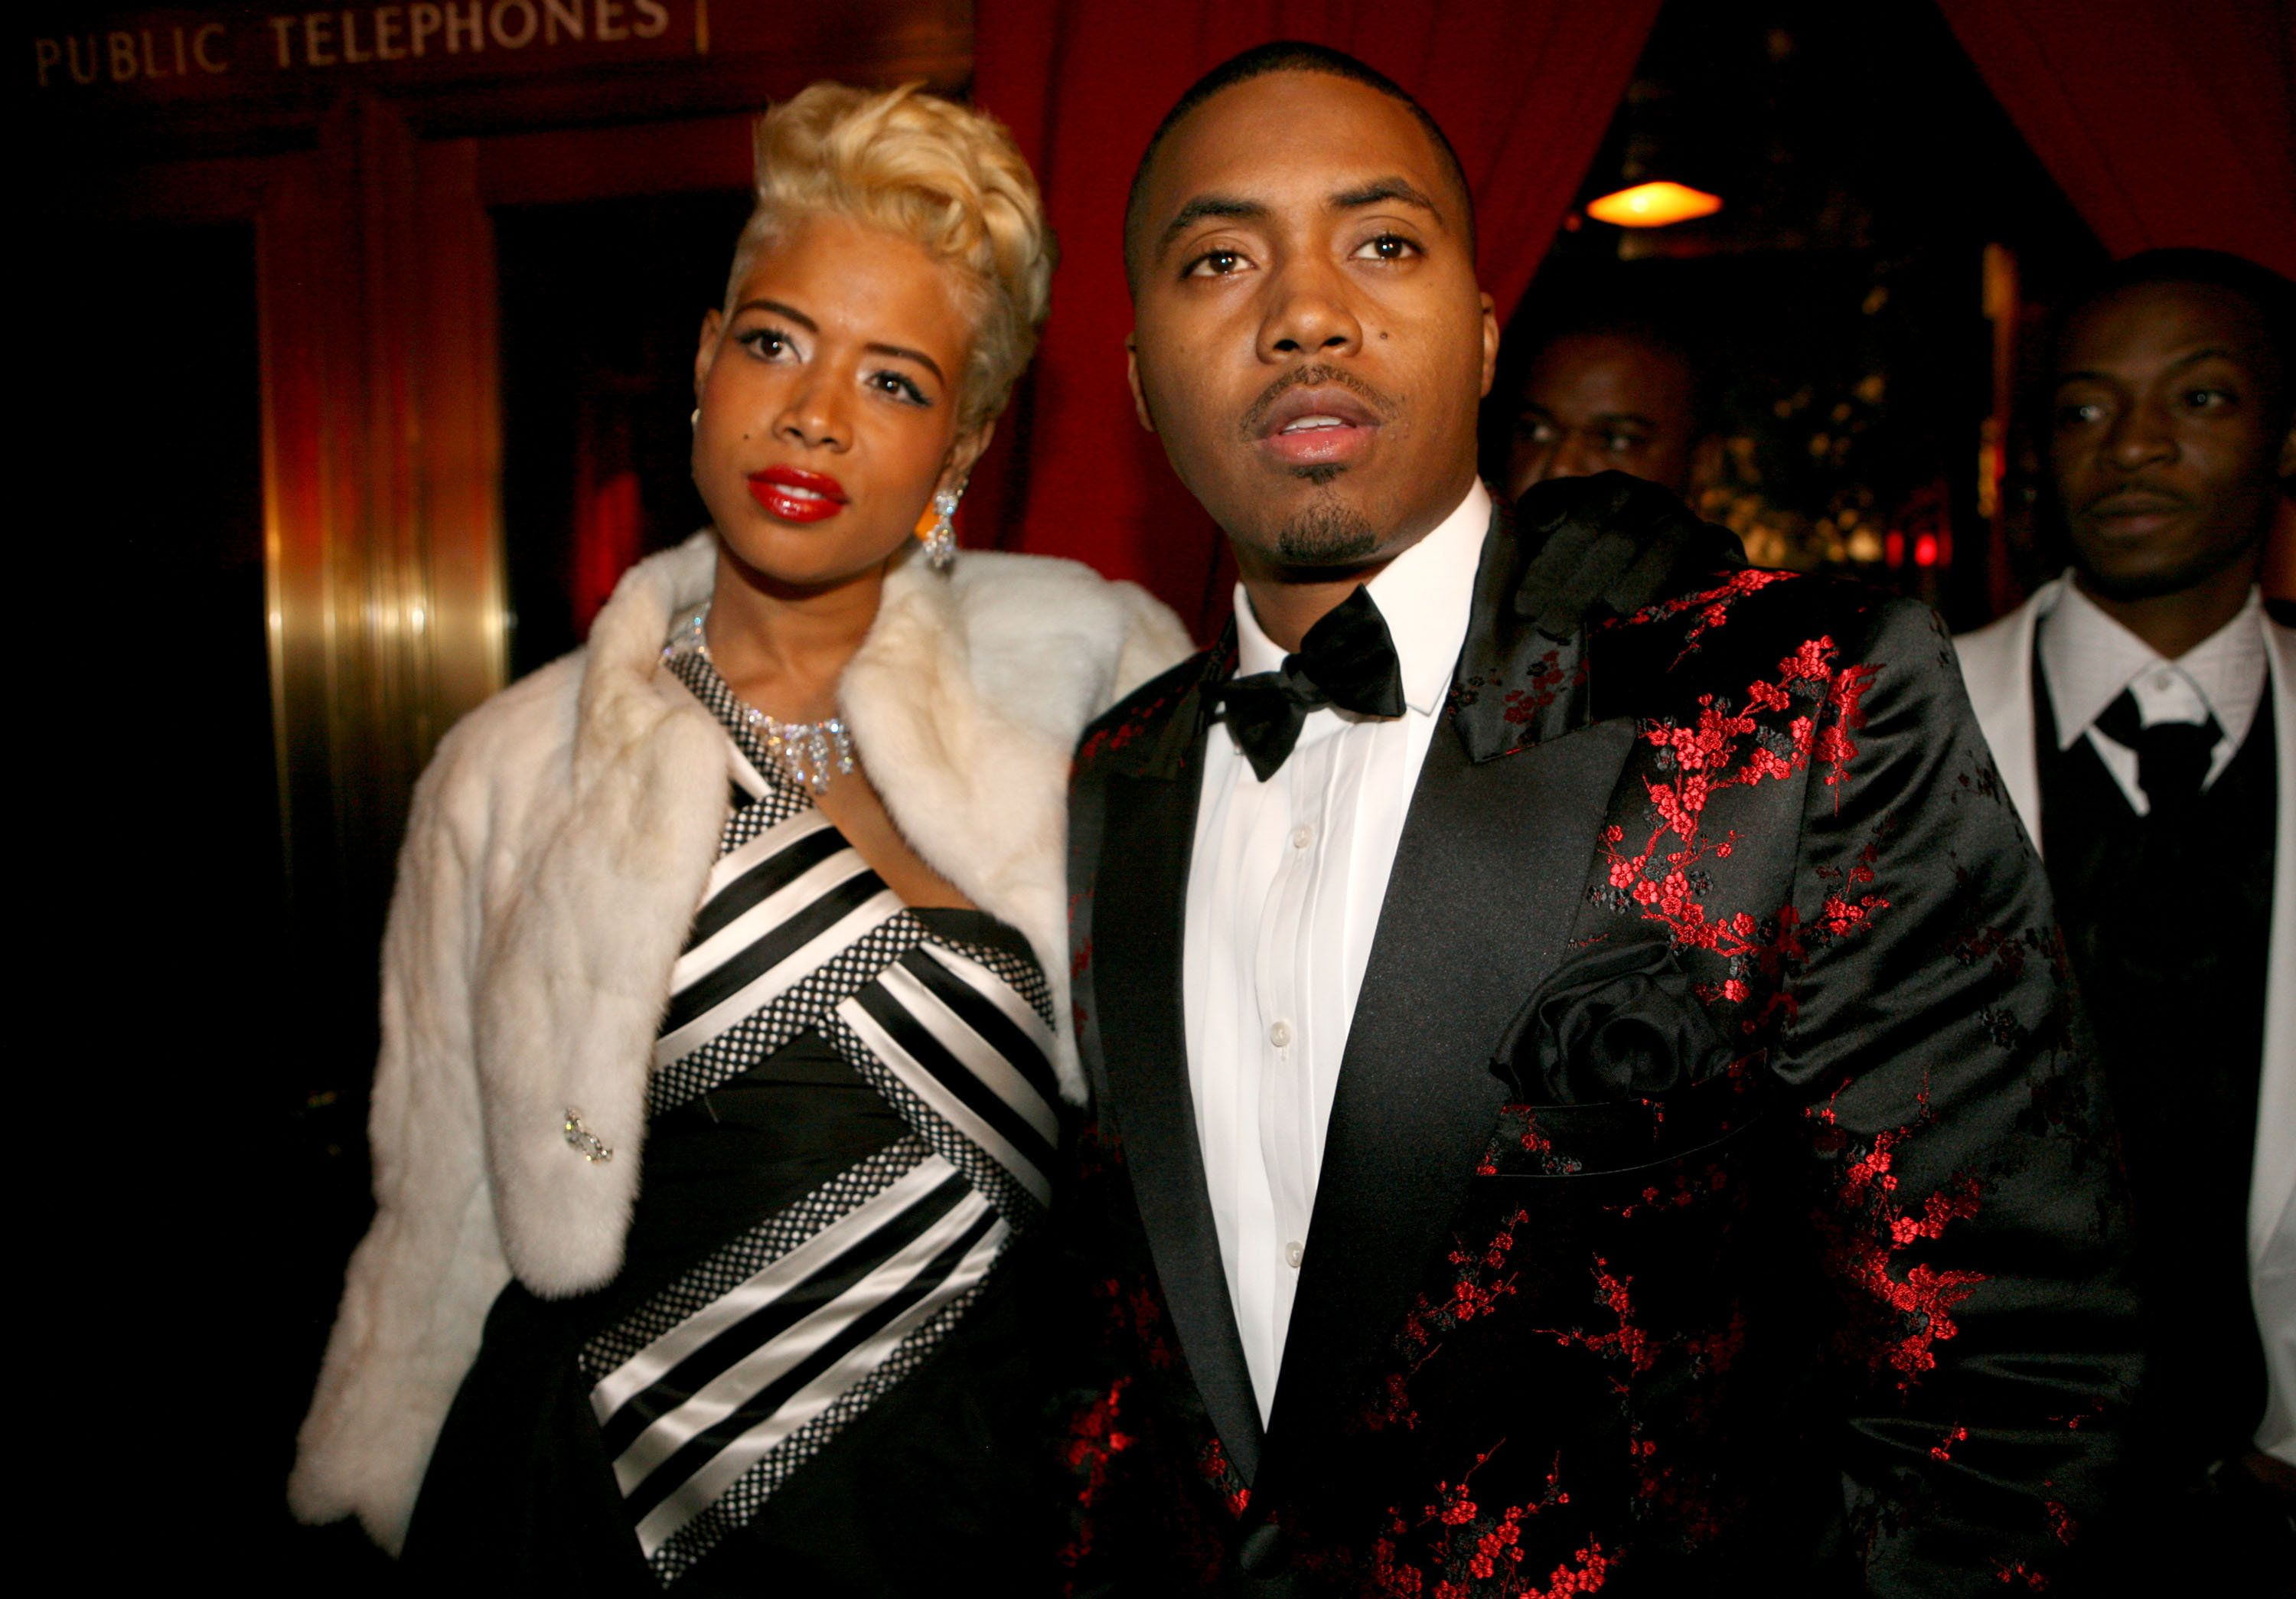 Kelis and Nas during Nas Celebrates His New Album 'Hip Hop is Dead' at His Black & White Ball - December 18, 2006 at Capitale in New York City, New York, United States. (Photo by Shareif Ziyadat/FilmMagic)